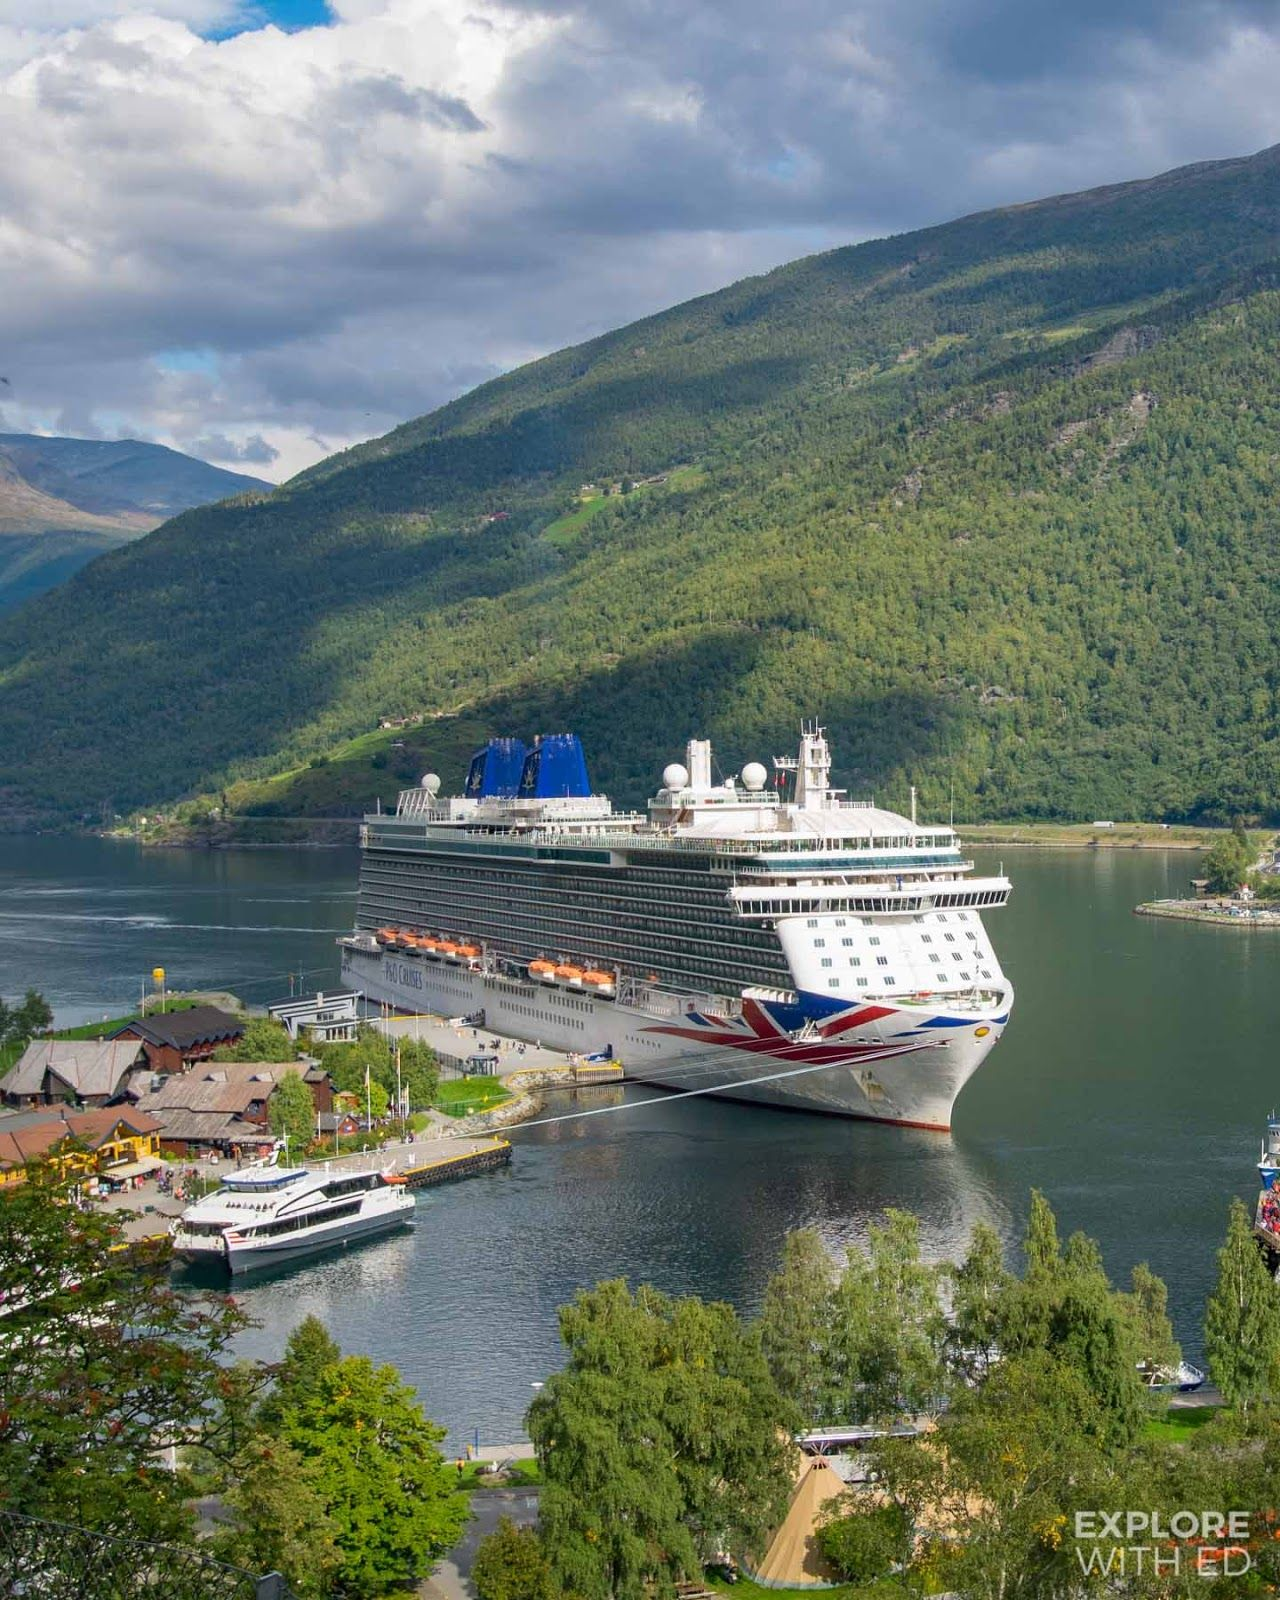 What S A Cruise To The Norwegian Fjords Like From Southampton Explore With Ed Norway Cruise Cruise Ship Cruise Travel